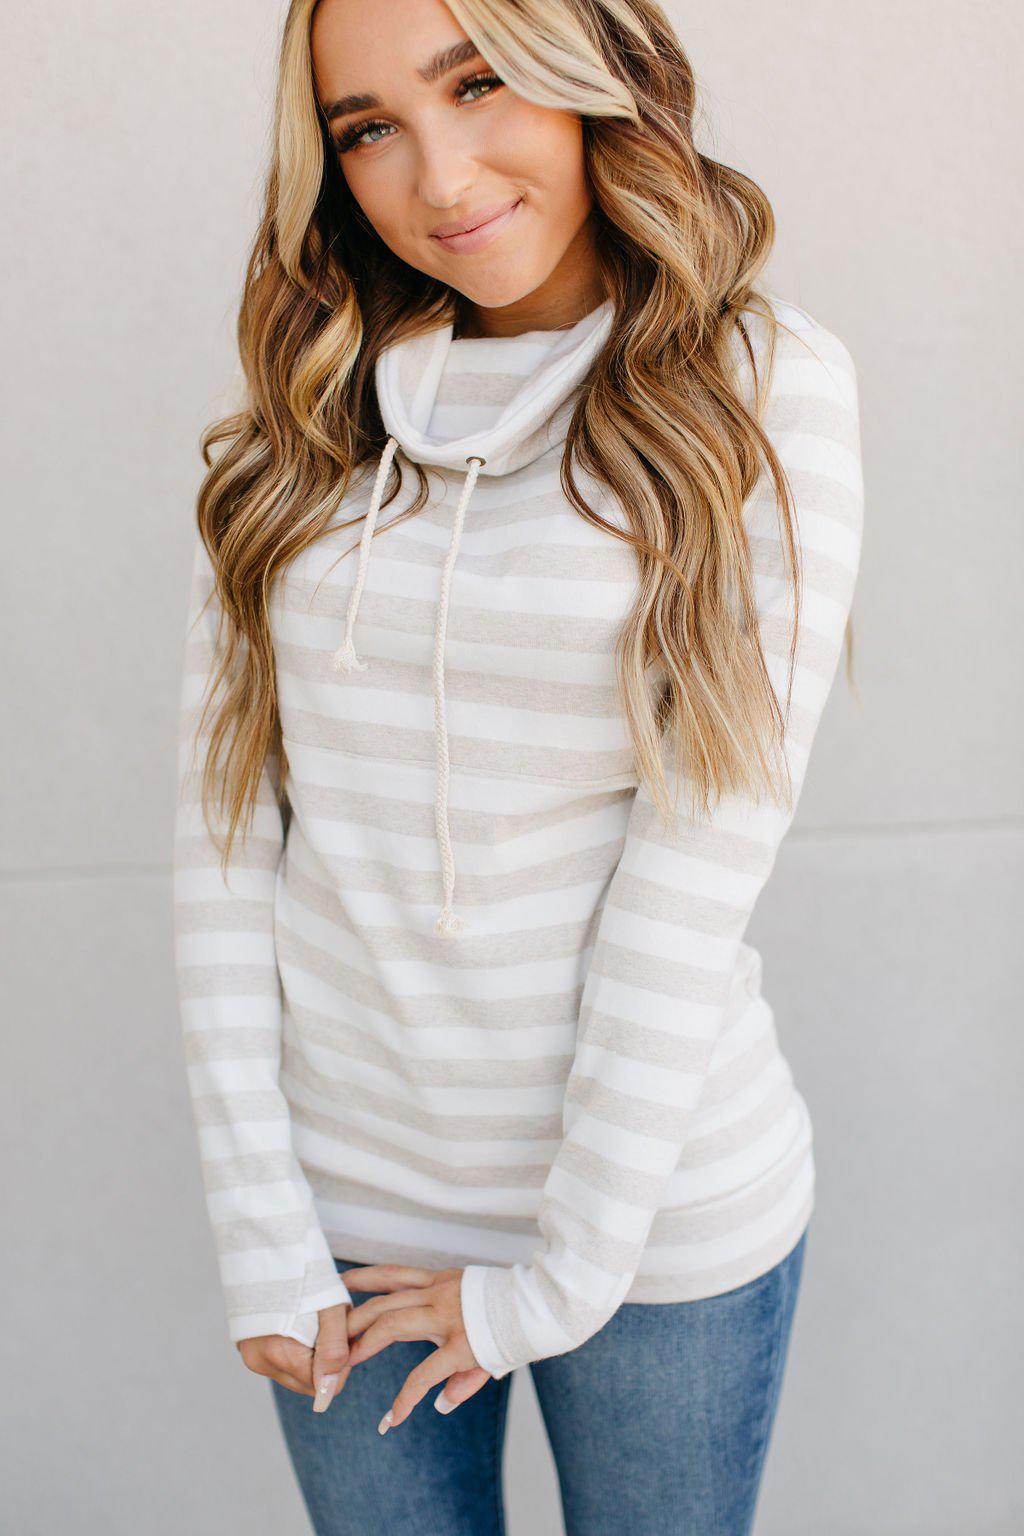 Ampersand Ave Cowlneck Sweatshirt - Naturally Needed